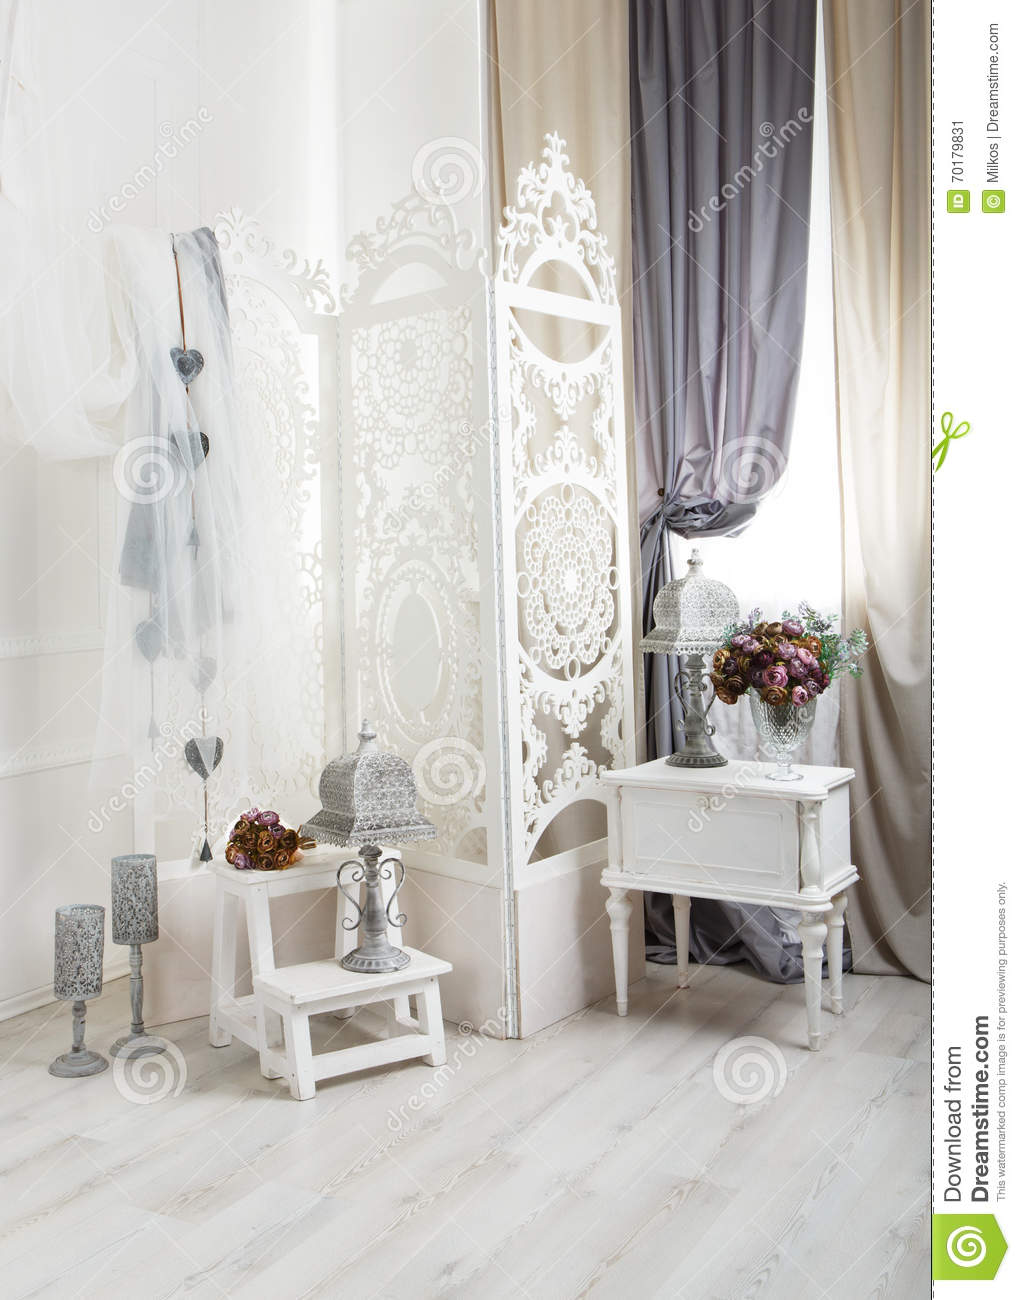 Shabby Chic White Room Interior, Wedding Decor Stock Image - Image ...